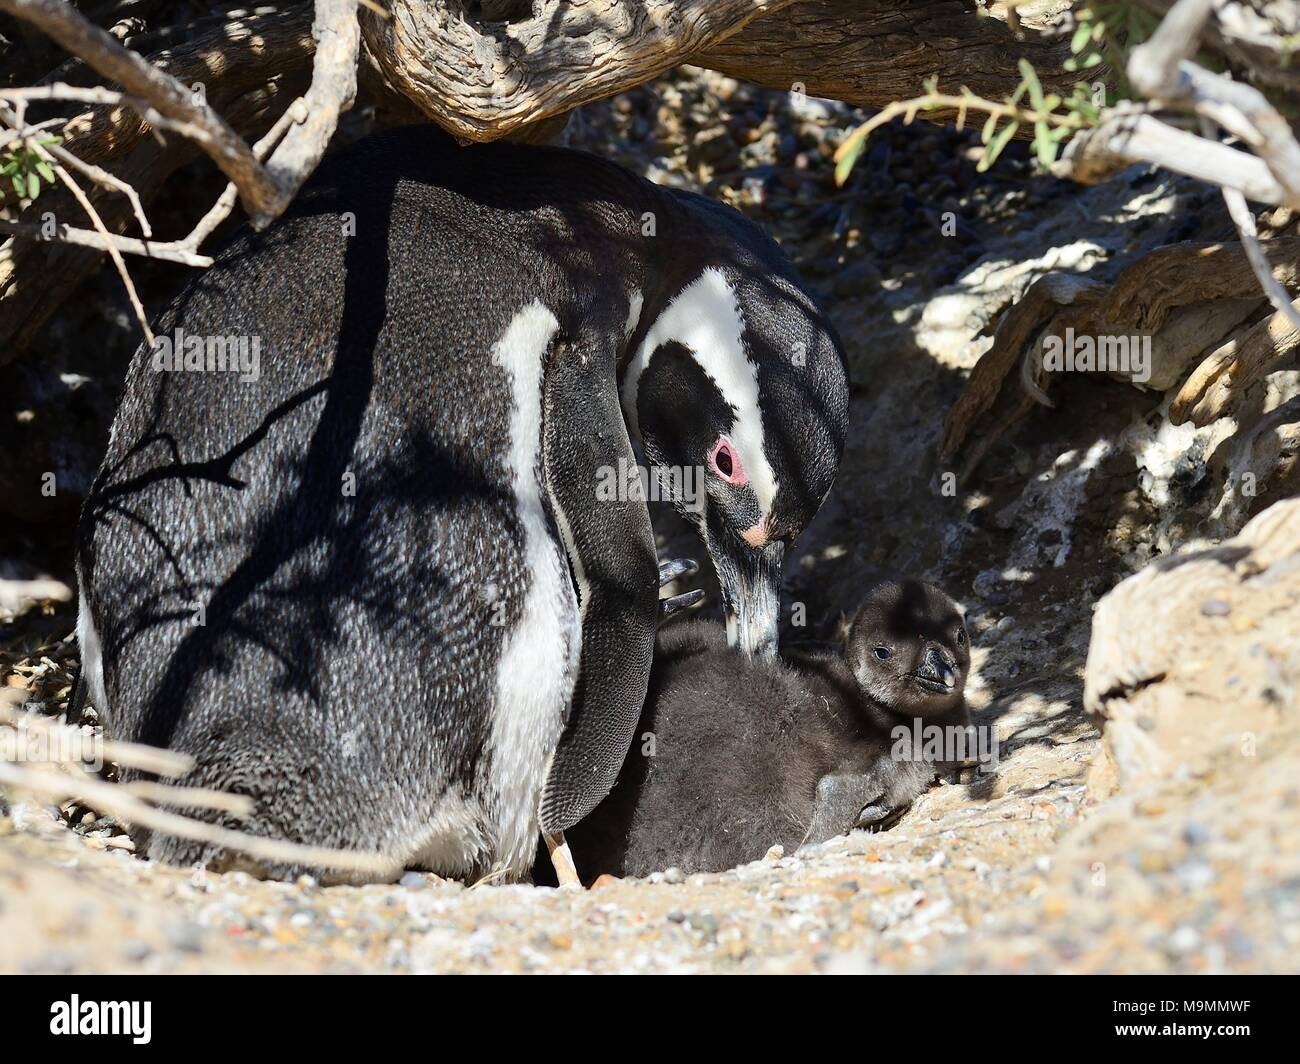 Magellanic penguin (Spheniscus magellanicus), adult animal animal with chicks at breeding burrow, Punta Tombo, Chubut, Argentina Stock Photo